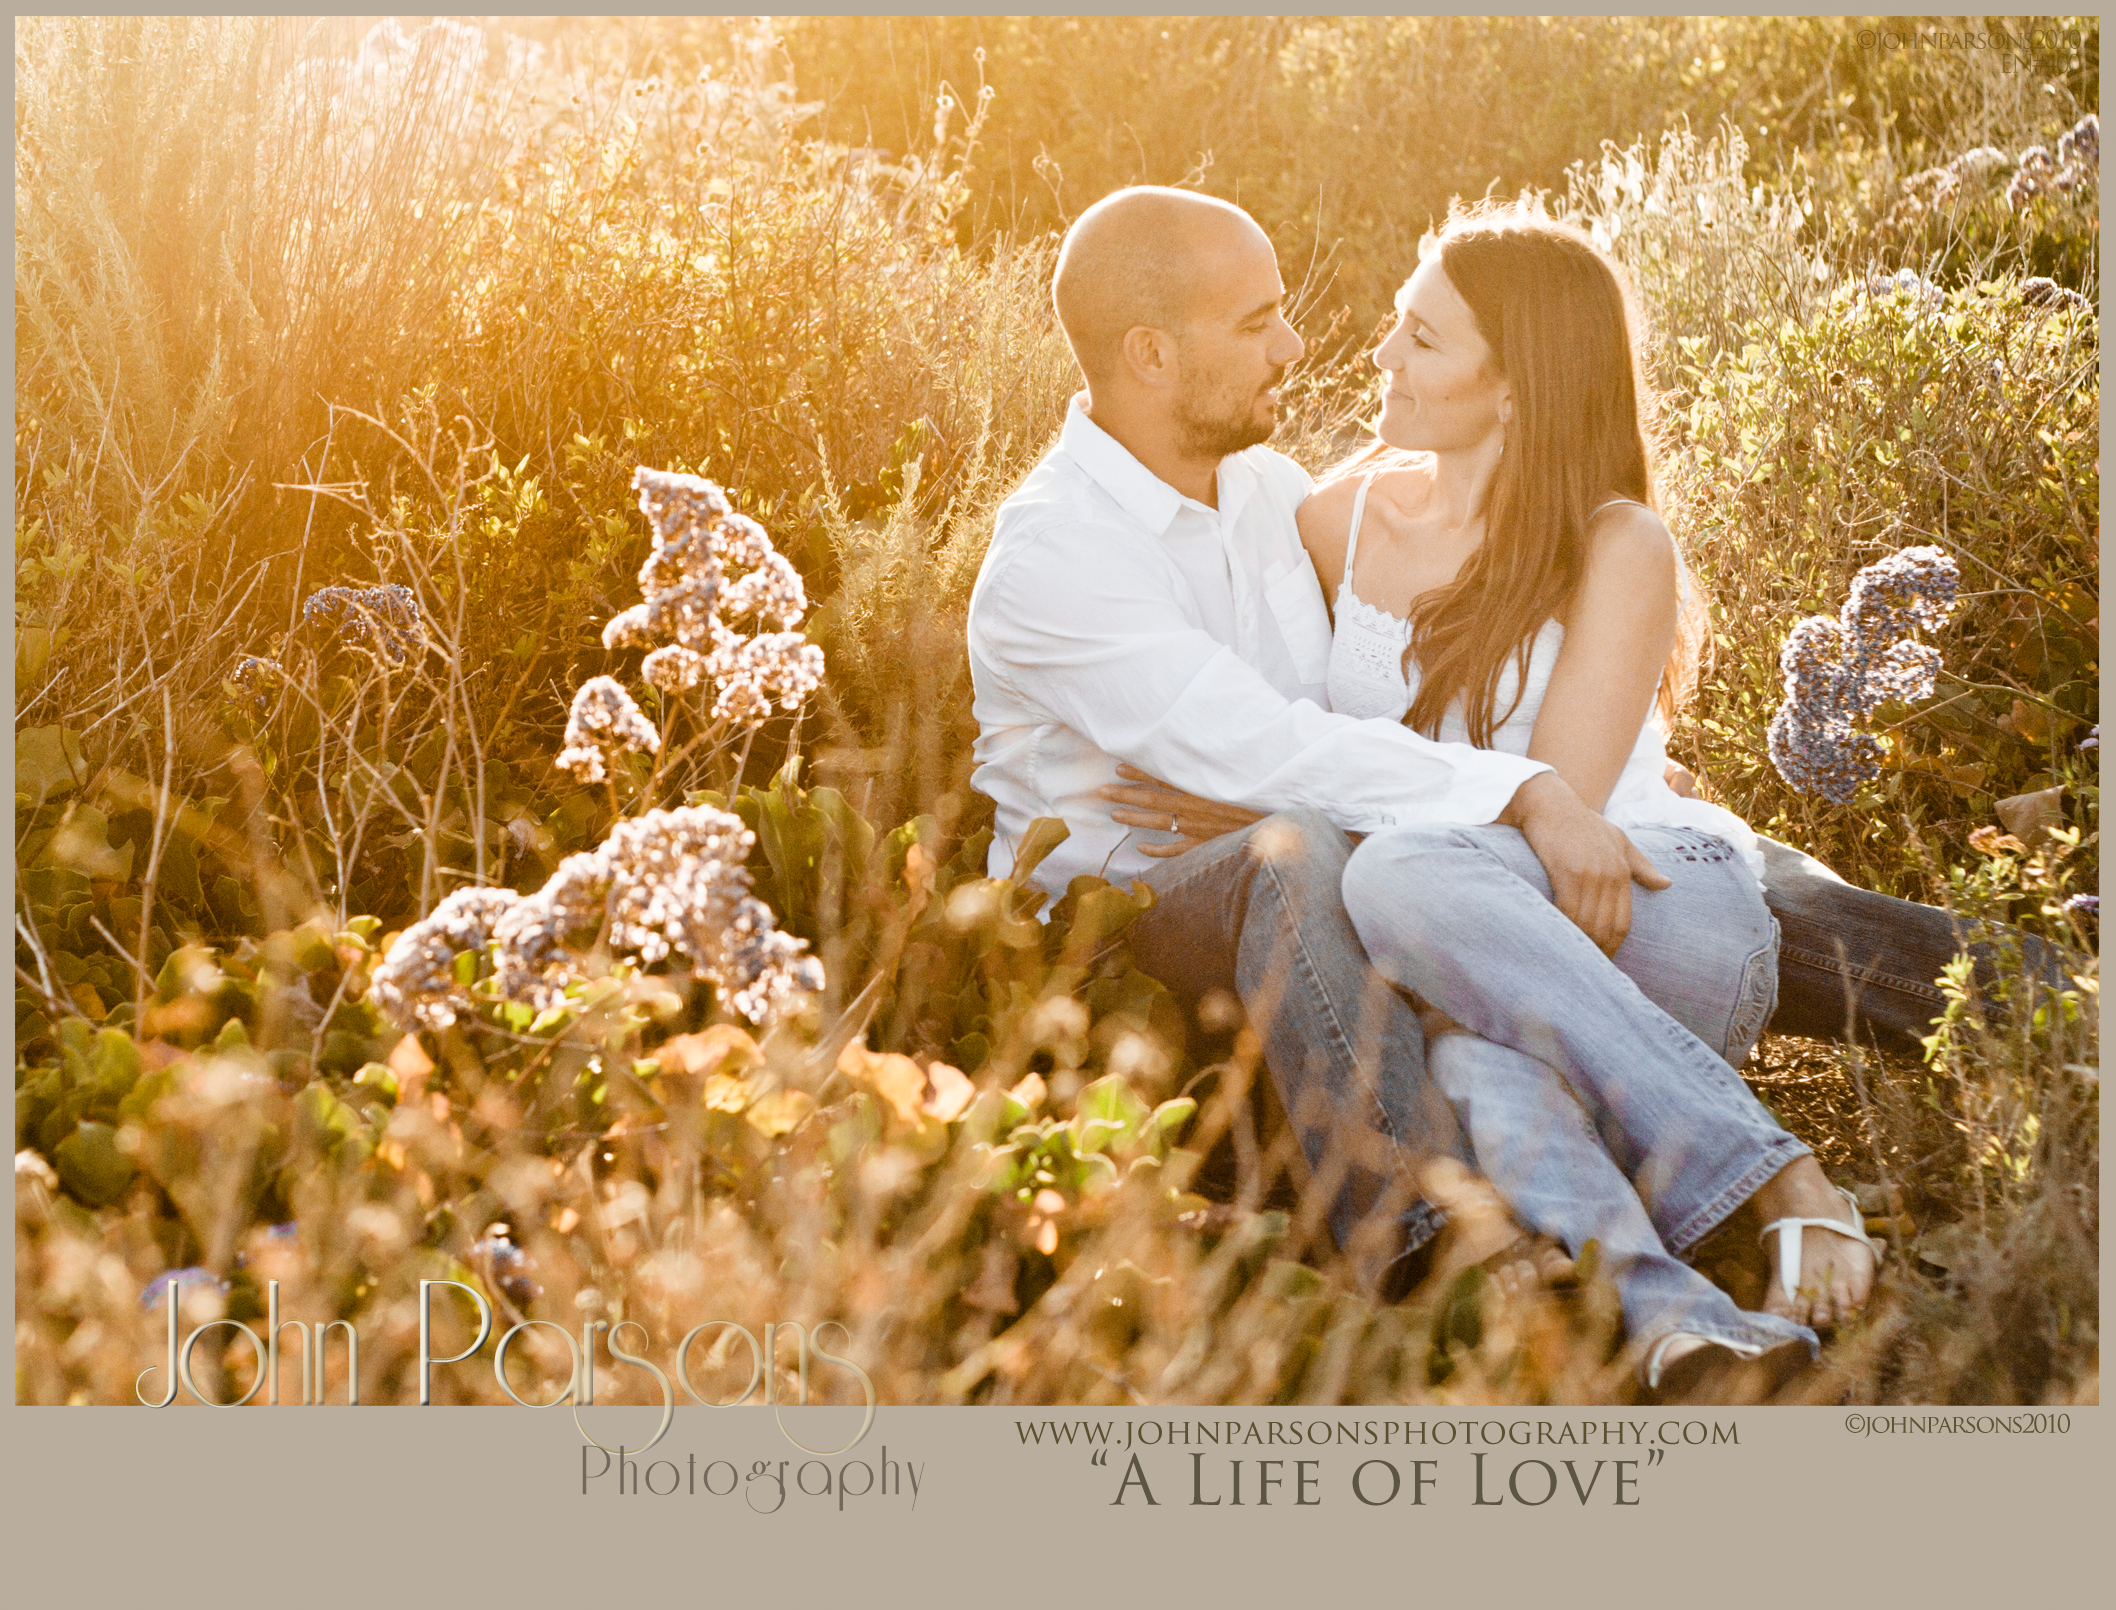 """A Life of Love"" Picture Code: EN#400 Photo Location: Costa Mesa, CA  Photographer: John Parsons Producer: David Parsons Company: John Parsons Photography Copyright: 2010  To schedule a Creative Brief for your romantic portraits, engagement photos, or wedding photography contact us at: Phone - (424) 234-3373 Email - David@JohnParsonsPhotography.com  For more info and to follow us visit us at: Website - JohnParsonsPhotography.com Instagram - @JohnParsonsPhotography Twitter - @JParsons_Photo"